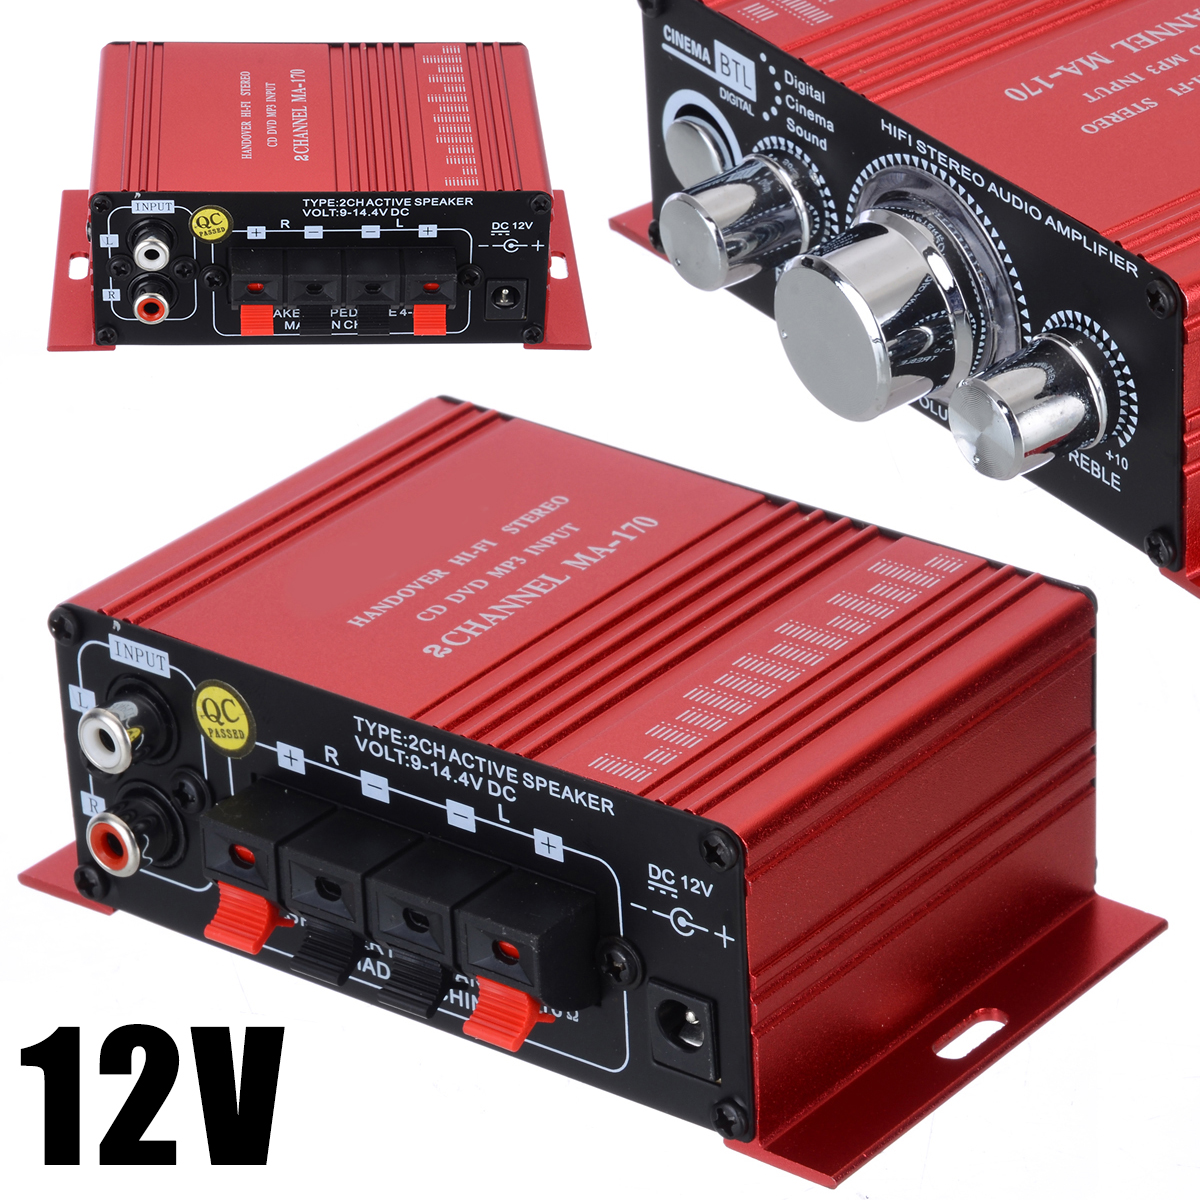 New Red Stereo HiFi Amplifier Aluminium 2 Channel AMP 20Hz To 20KHz Amplifiers For Computer Desktop Speaker MA-170